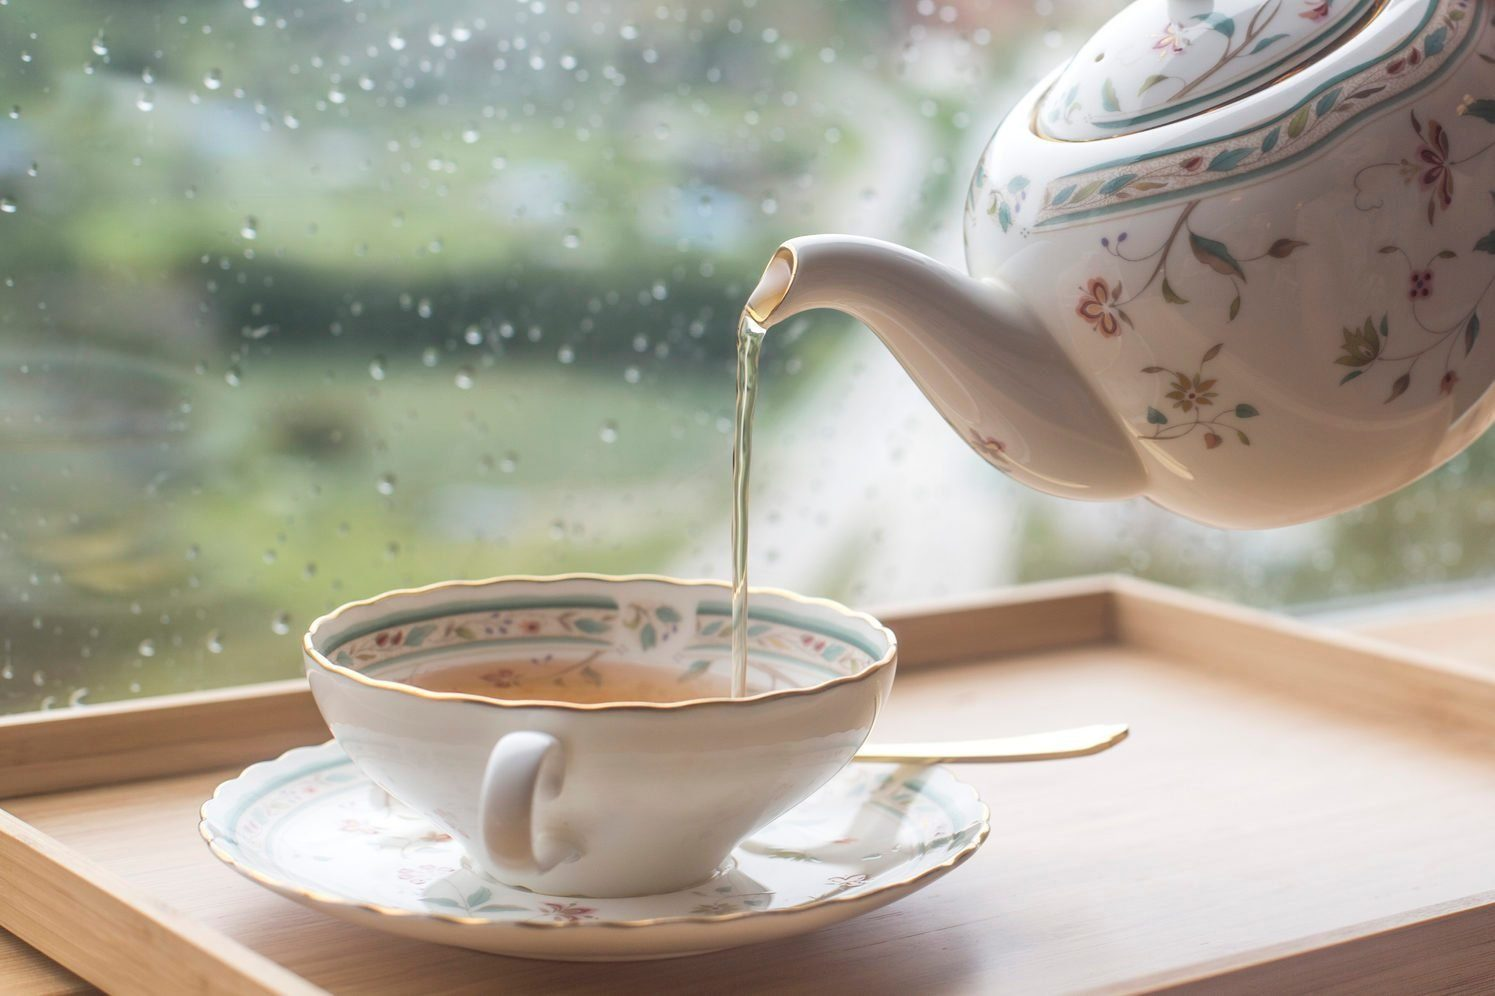 A man pouring black tea from the ceramic teapot in cafe. Close up on hands